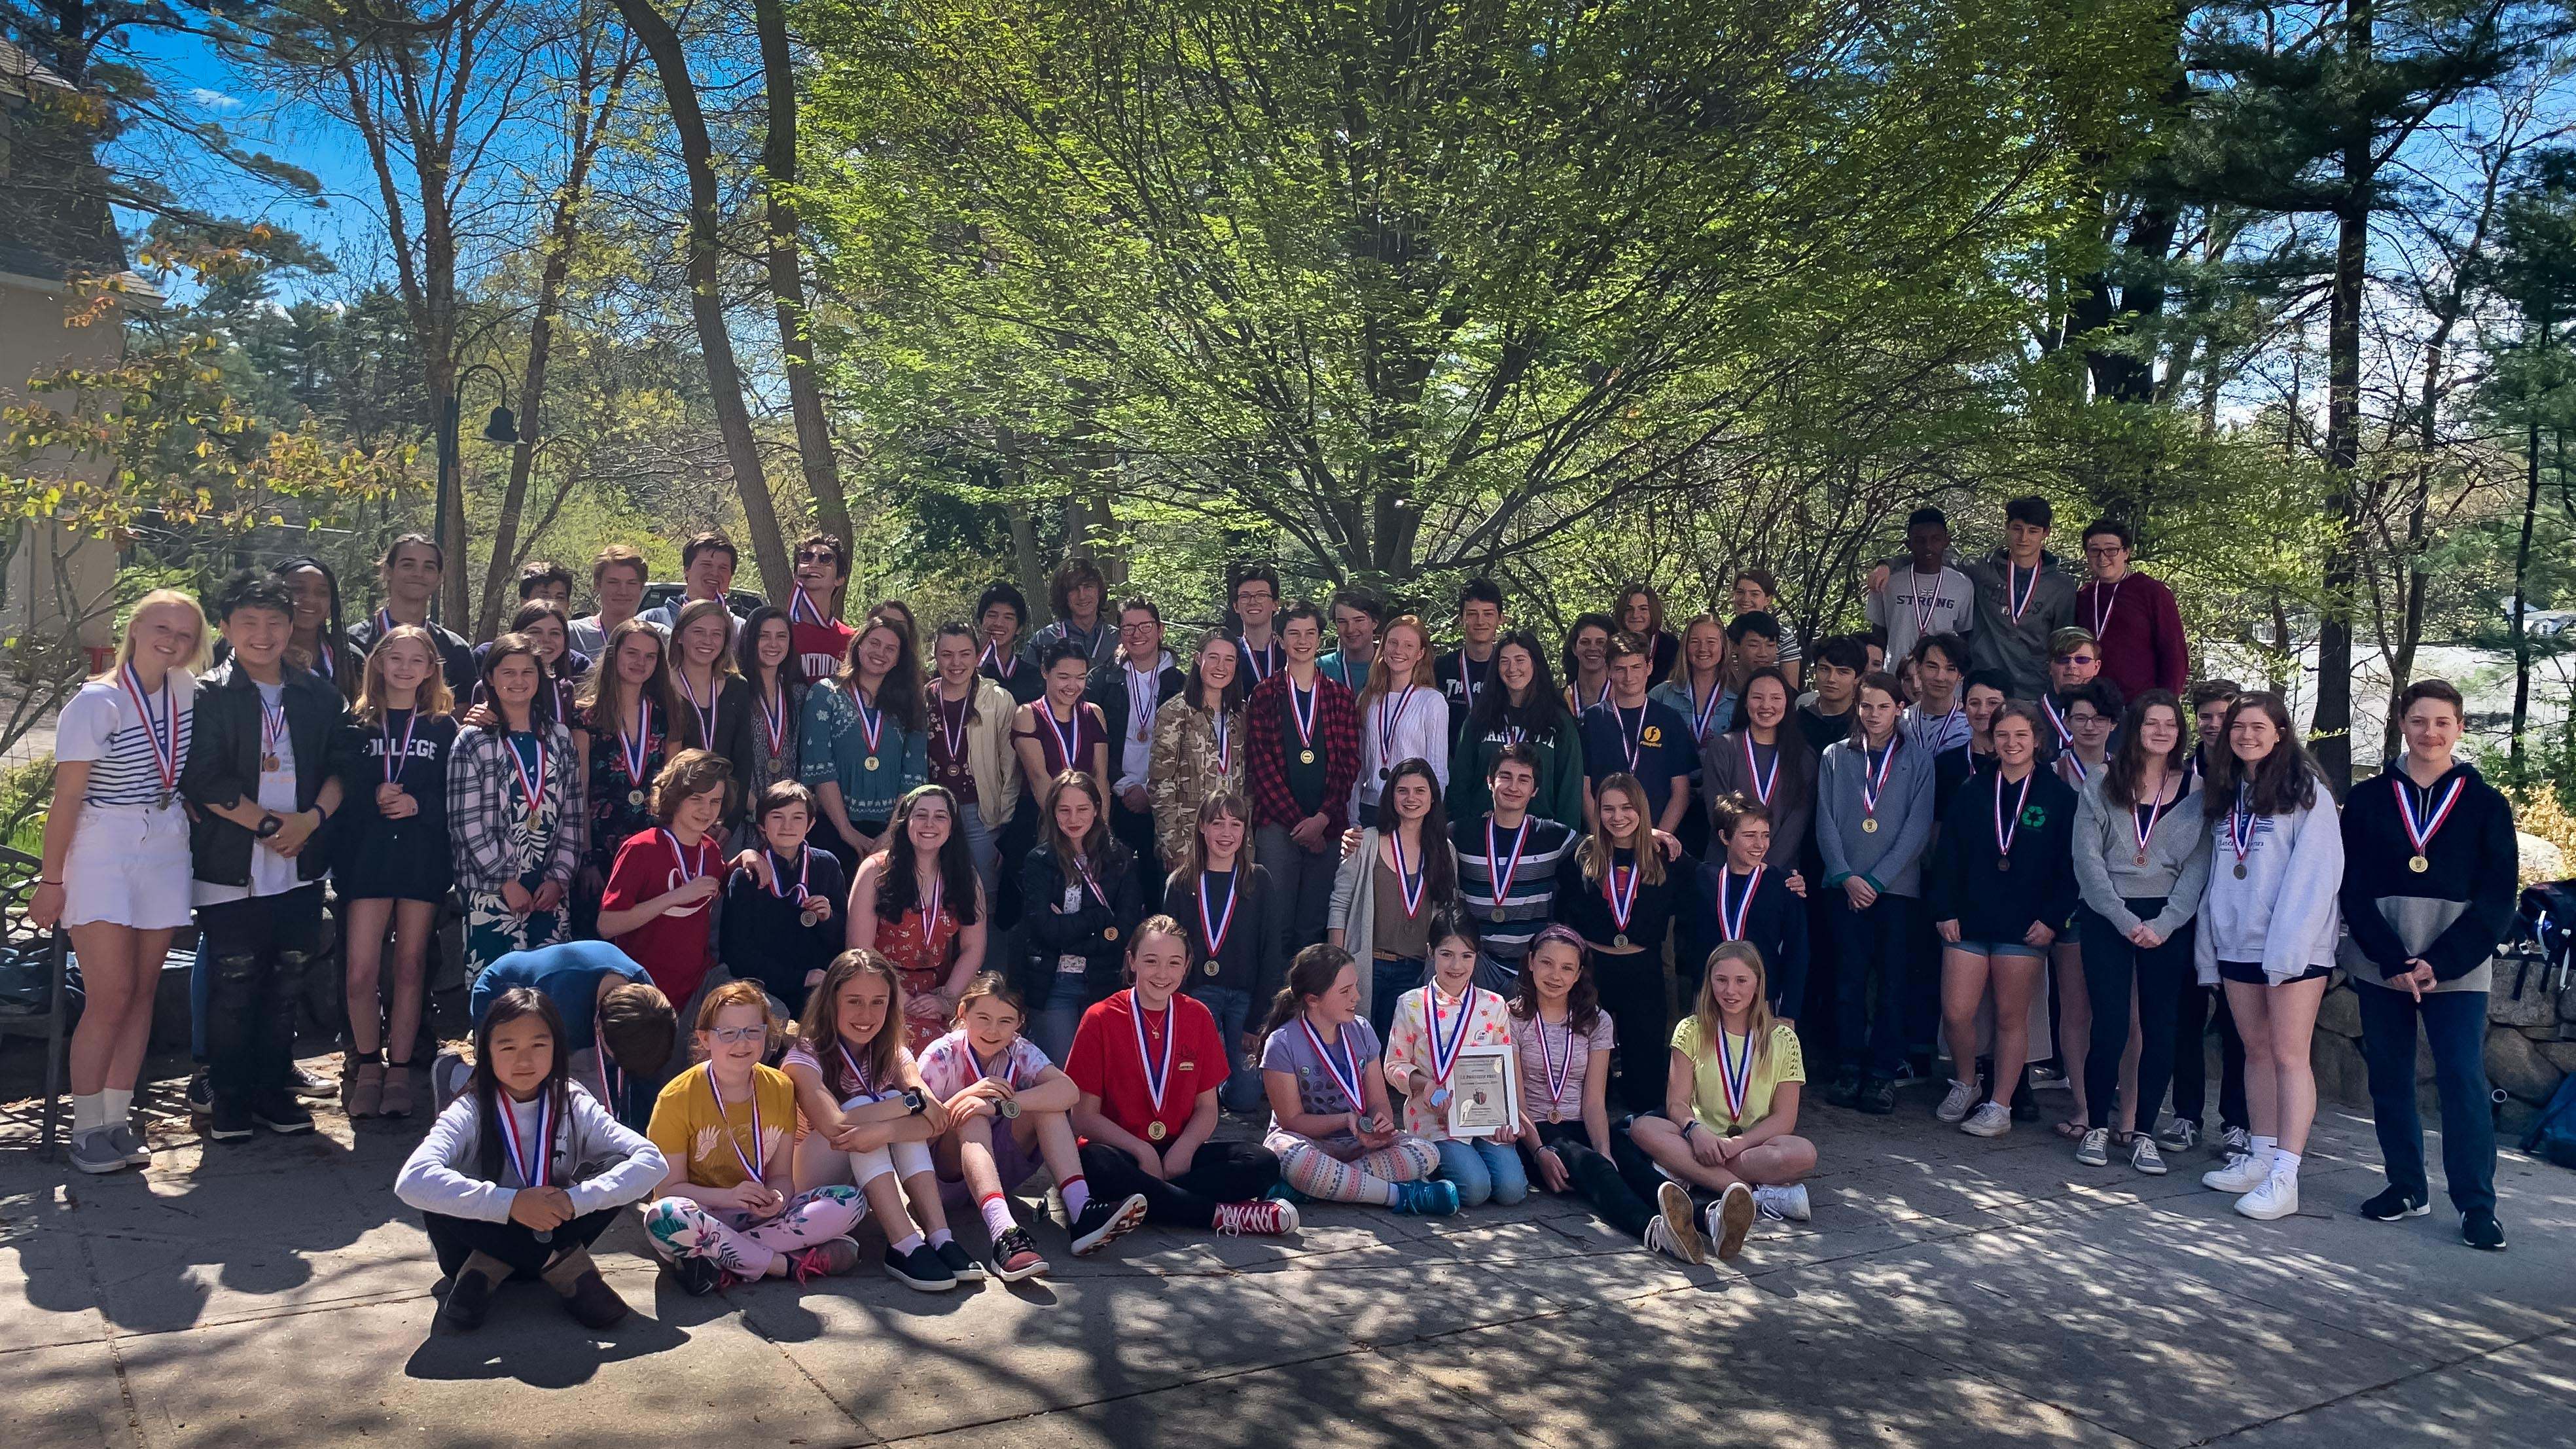 69 Students Medal On National French Contest, 2 Students